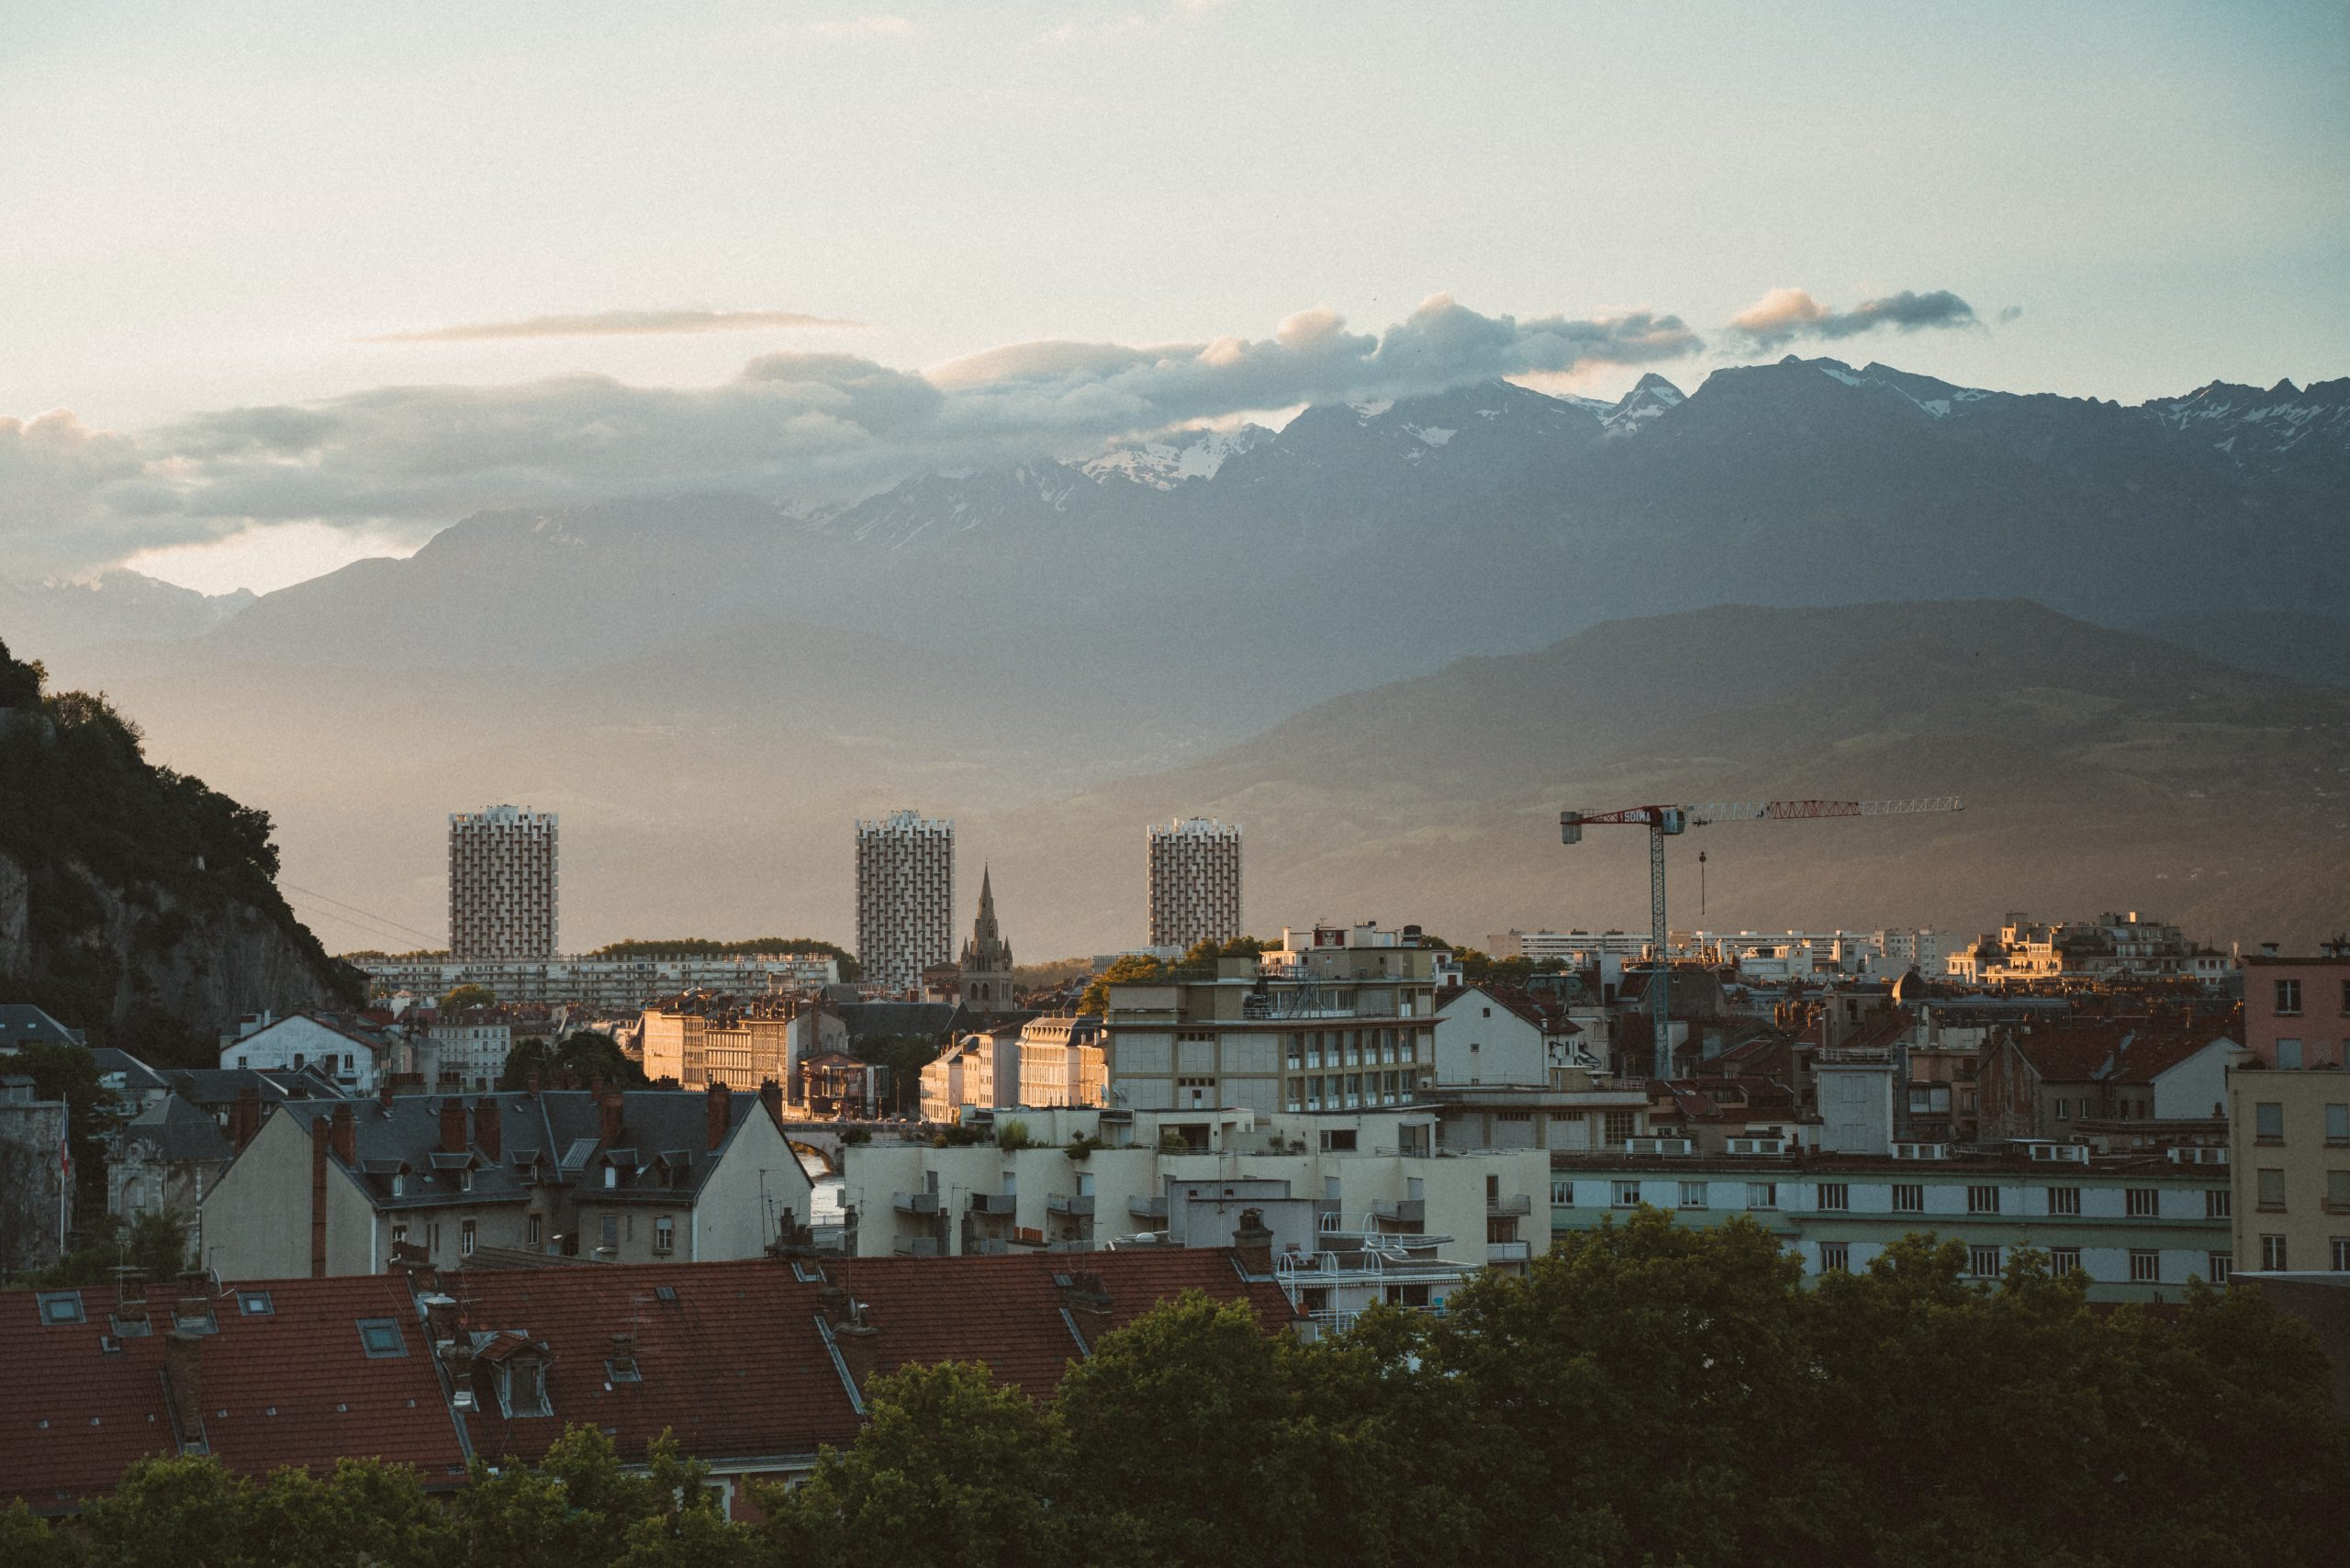 Grenoble awarded EU Green Capital 2022